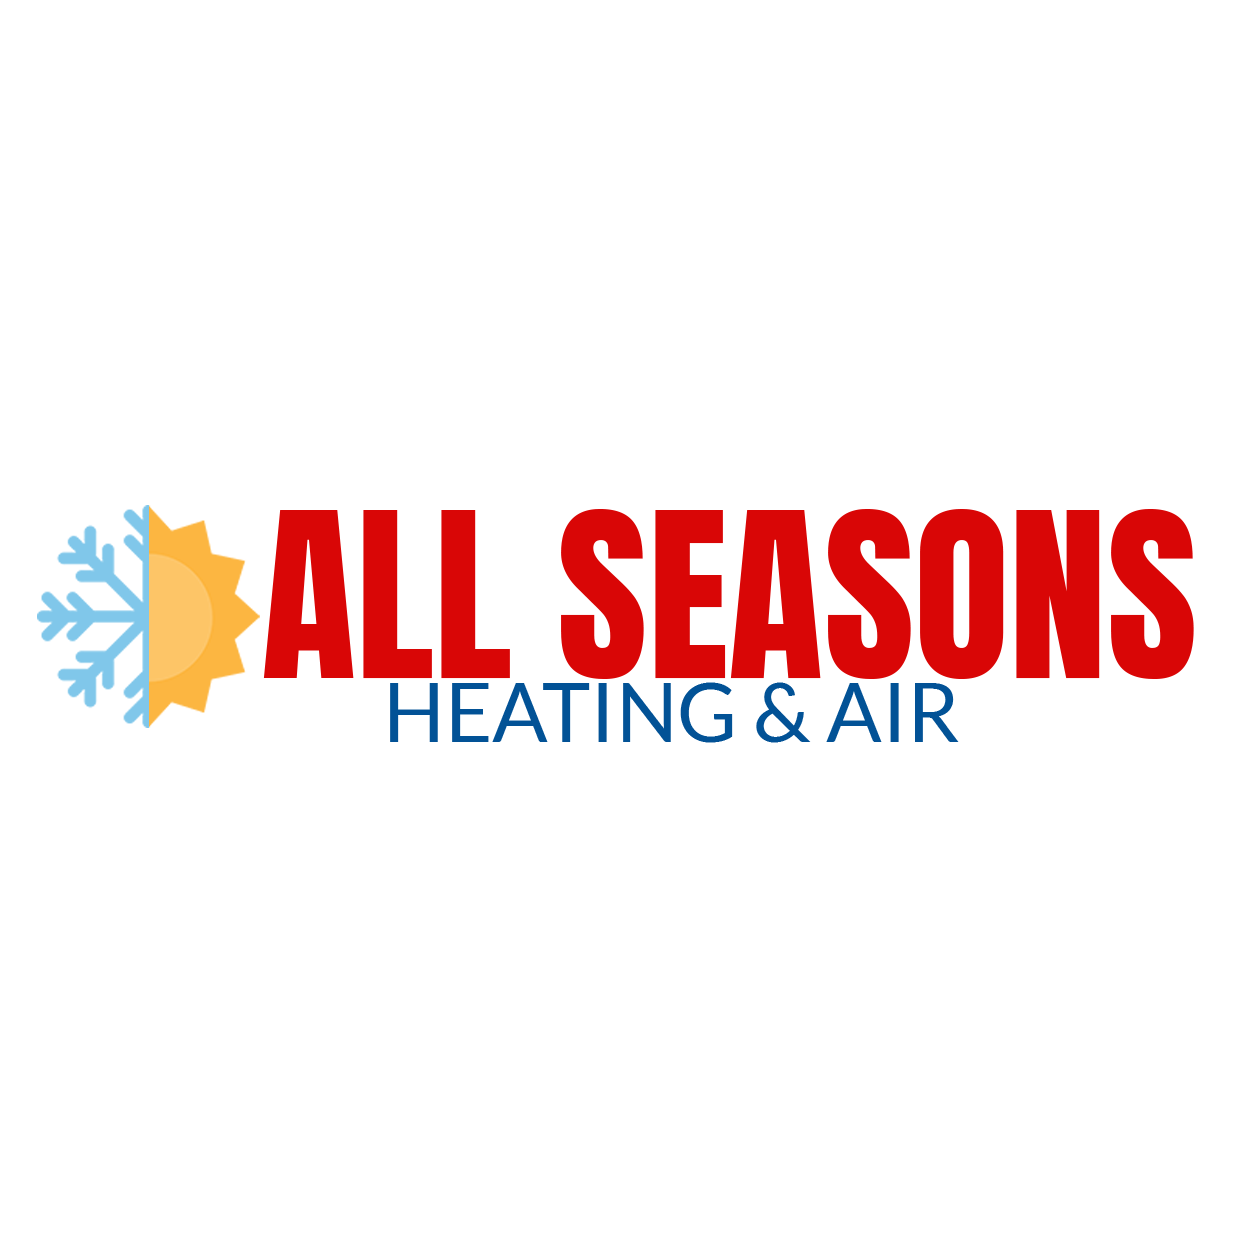 All Seasons Heating & Air